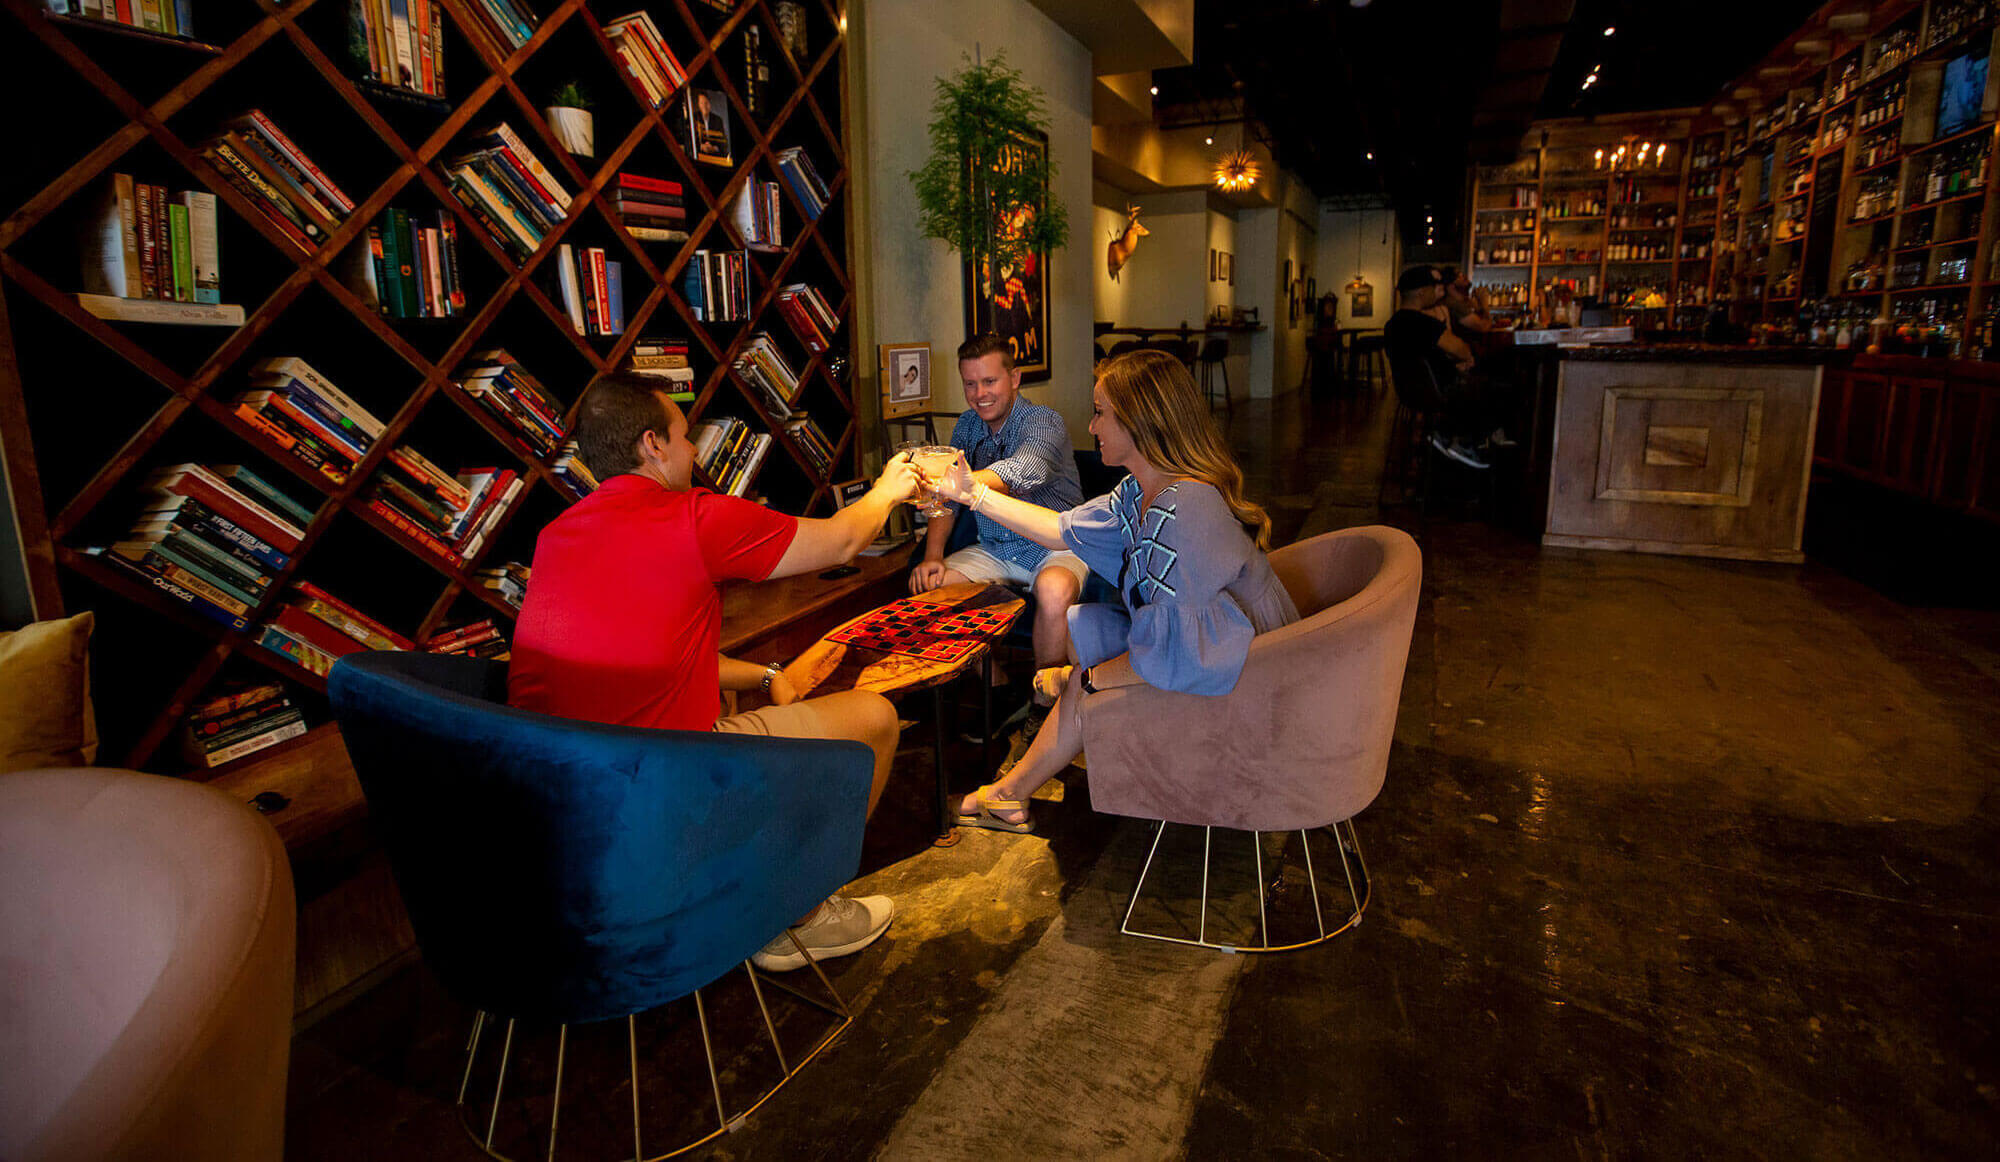 3 people sitting around a coffee table at Revival in Lakeland, FL. Shelved filled with books on side wall. Bar in background.